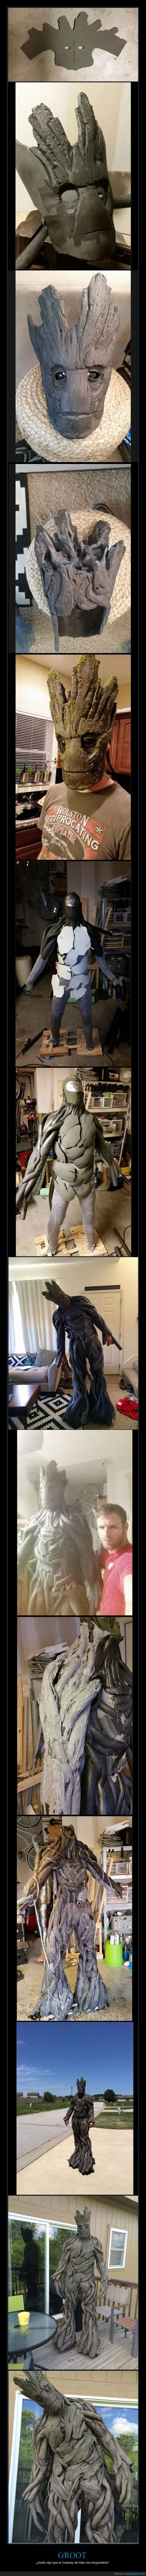 918495 - Groot, un cosplay exquisito